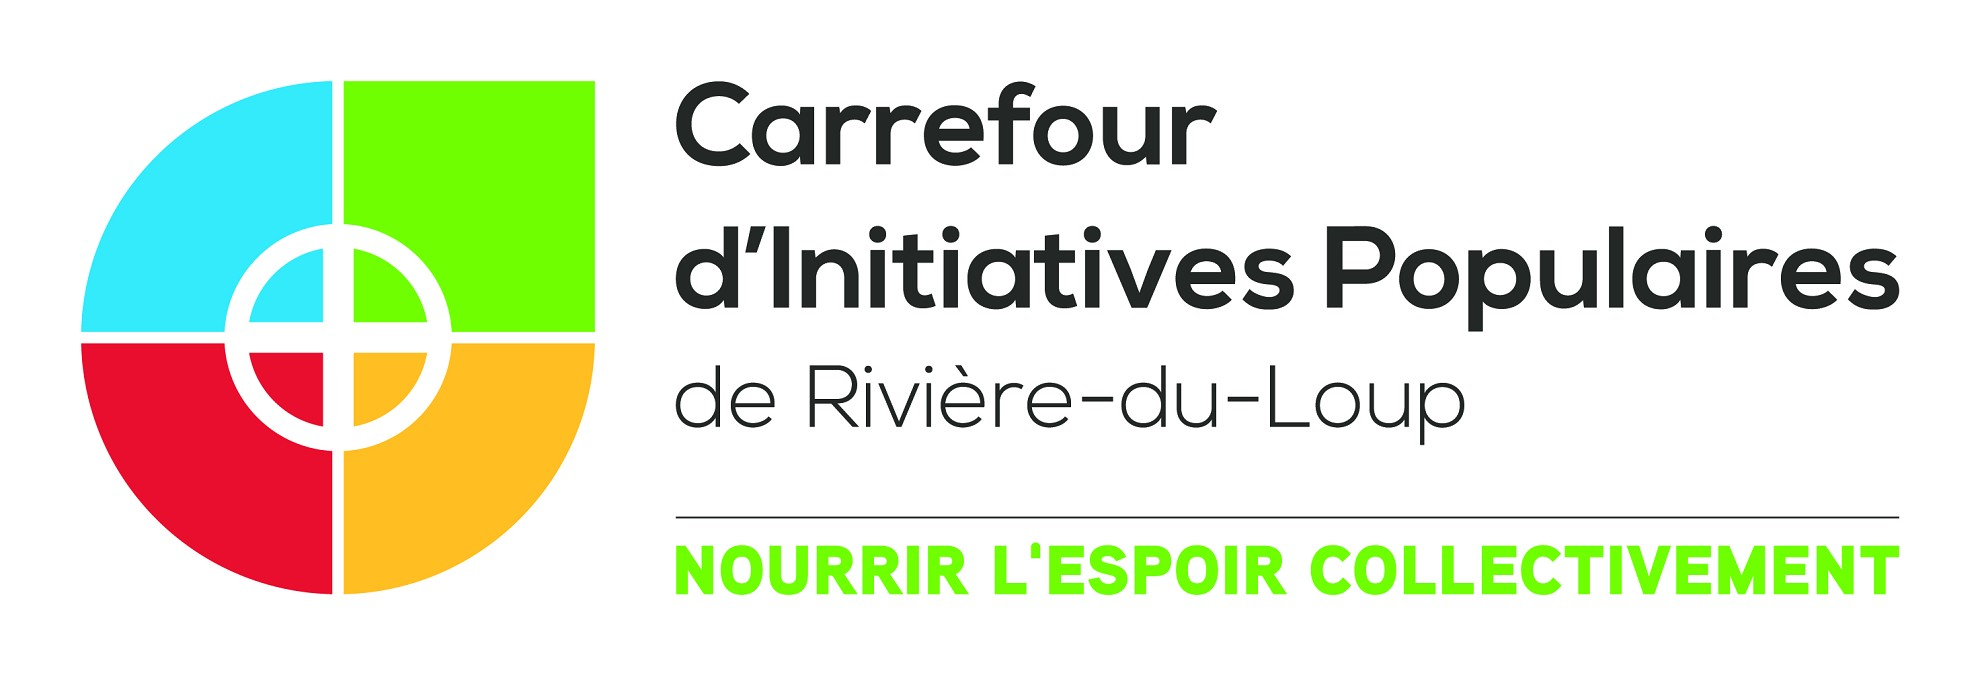 http://www.cdcgrandesmarees.org/documents/images/logos/carrefour-dinitiative-populaire_cls-01.jpg